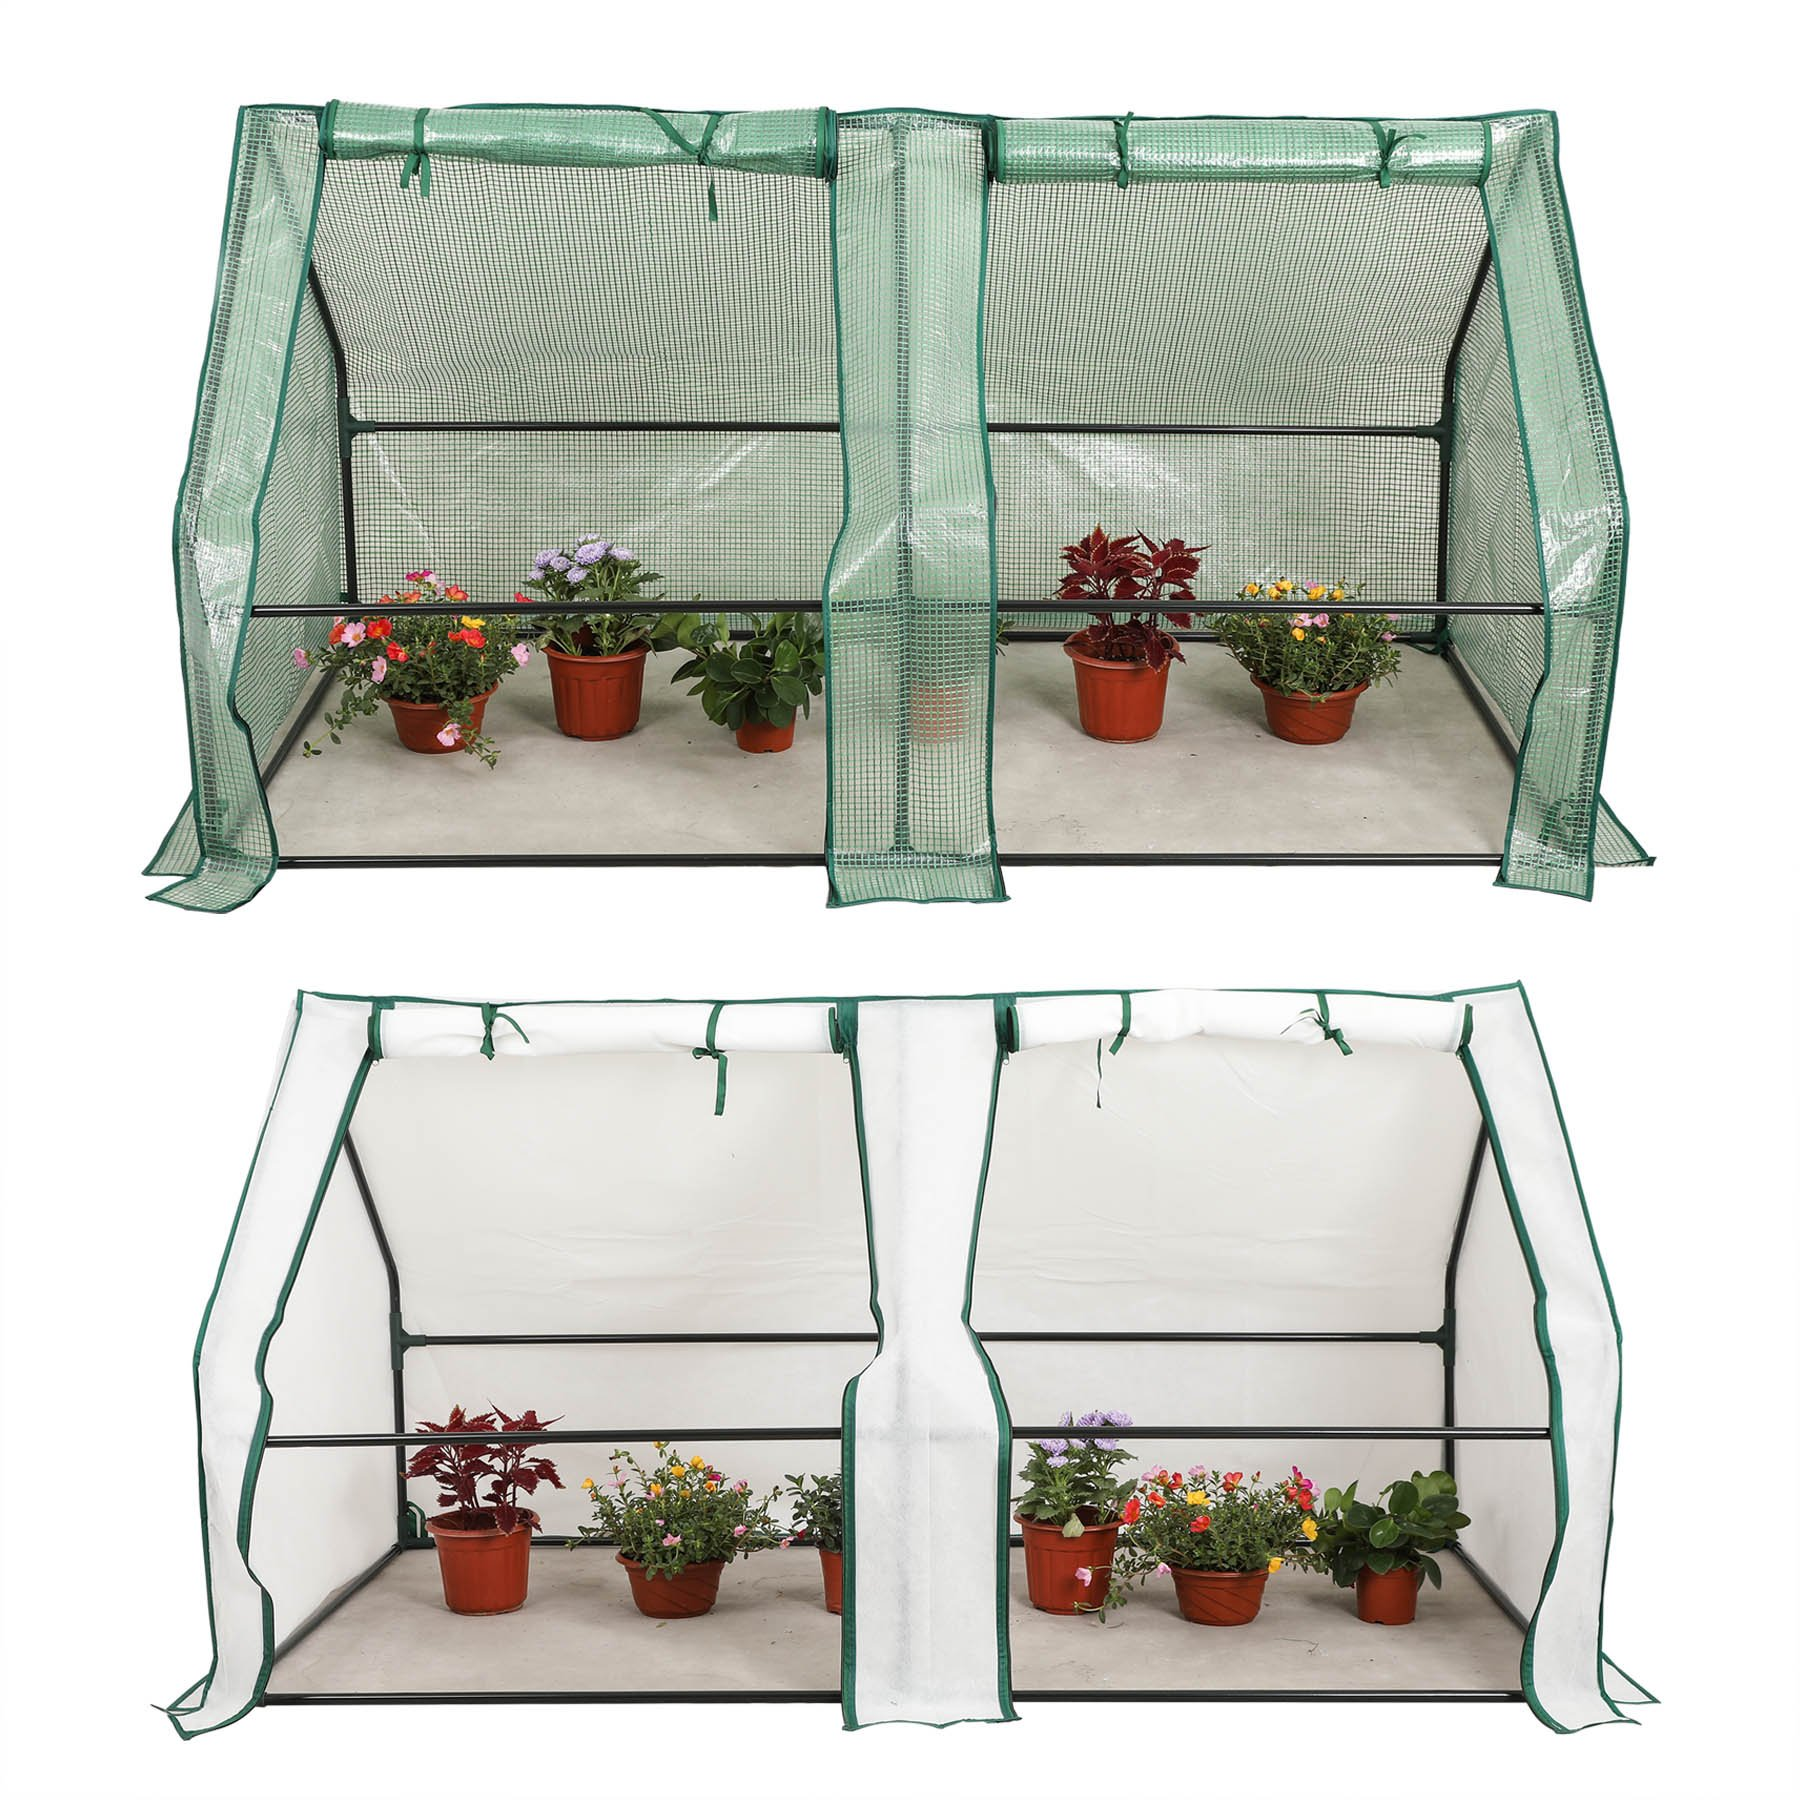 CO-Z Portable Greenhouse Mini Hot House with PE and Non-Woven Cover, Waterproof Cloche Greenhouse and UV Protected Greenhouse Tent, 5.9 x 3.0 x 3.0 Feet. by CO-Z